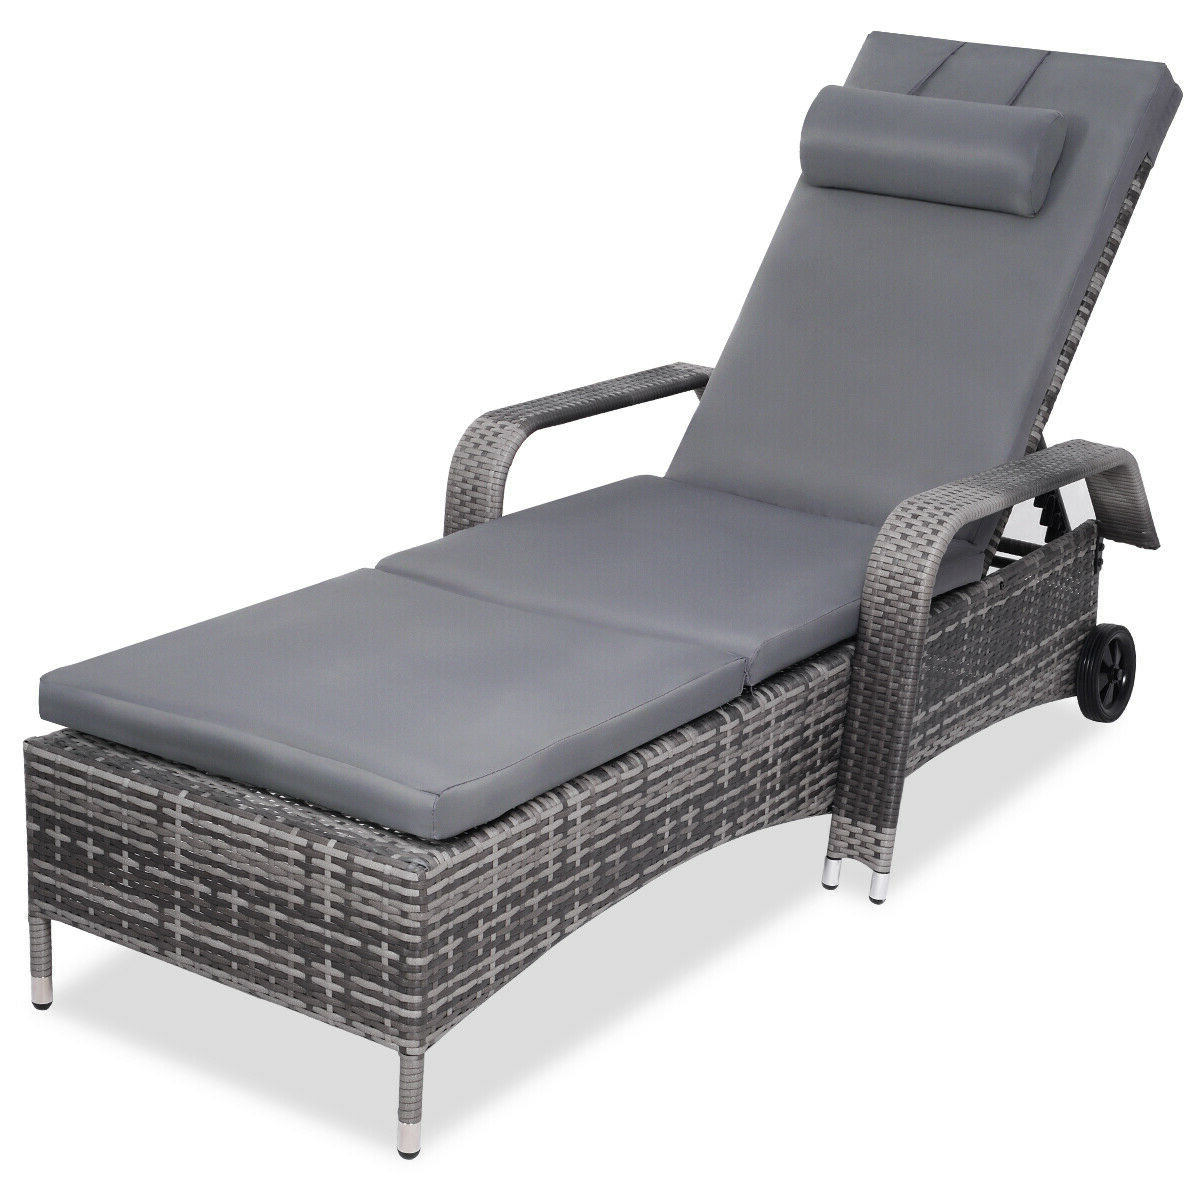 Outdoor Cart Wheel Adjustable Chaise Lounge Chairs Intended For Well Liked Wicker Chaise Lounge Chair Adjustable Outdoor Patio Furniture Reclining Wheels (View 8 of 25)